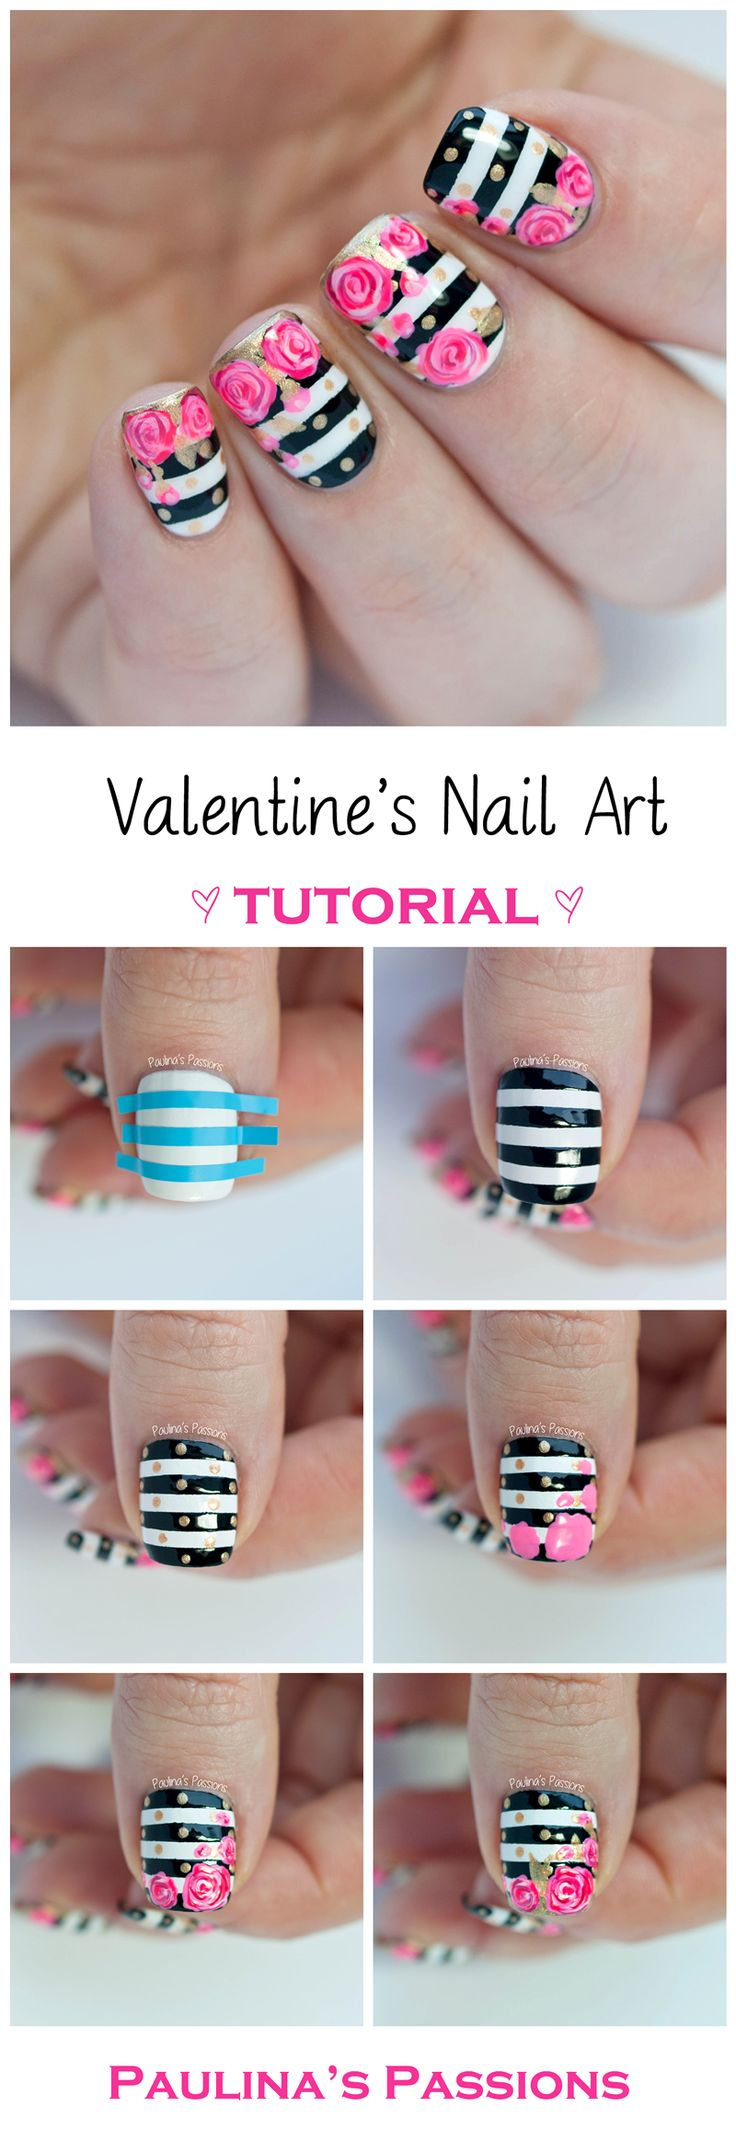 Best 25 nautical nail designs ideas on pinterest sailor nails best 25 nautical nail designs ideas on pinterest sailor nails nautical nail art and nautical nails prinsesfo Choice Image